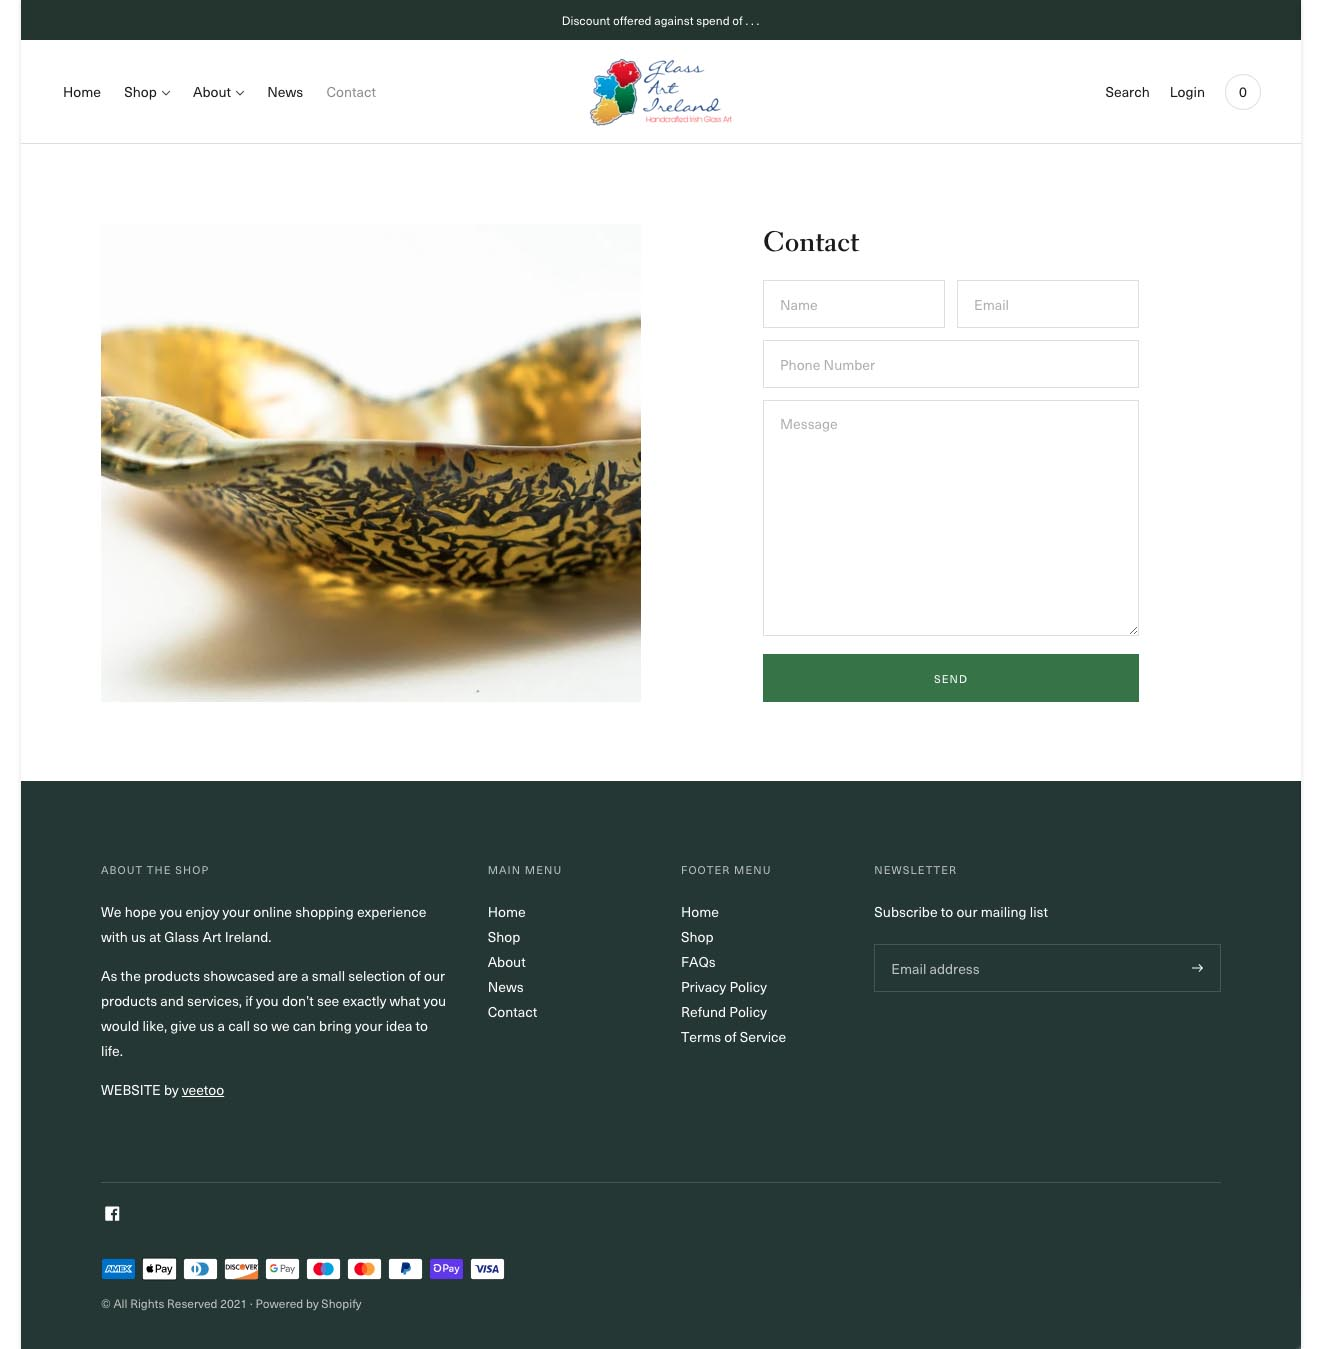 Website design portfolio project 11 - website contact page design layout for Keith Sheppard Glass designed by veetoo website design and development, Belfast, Northern Ireland